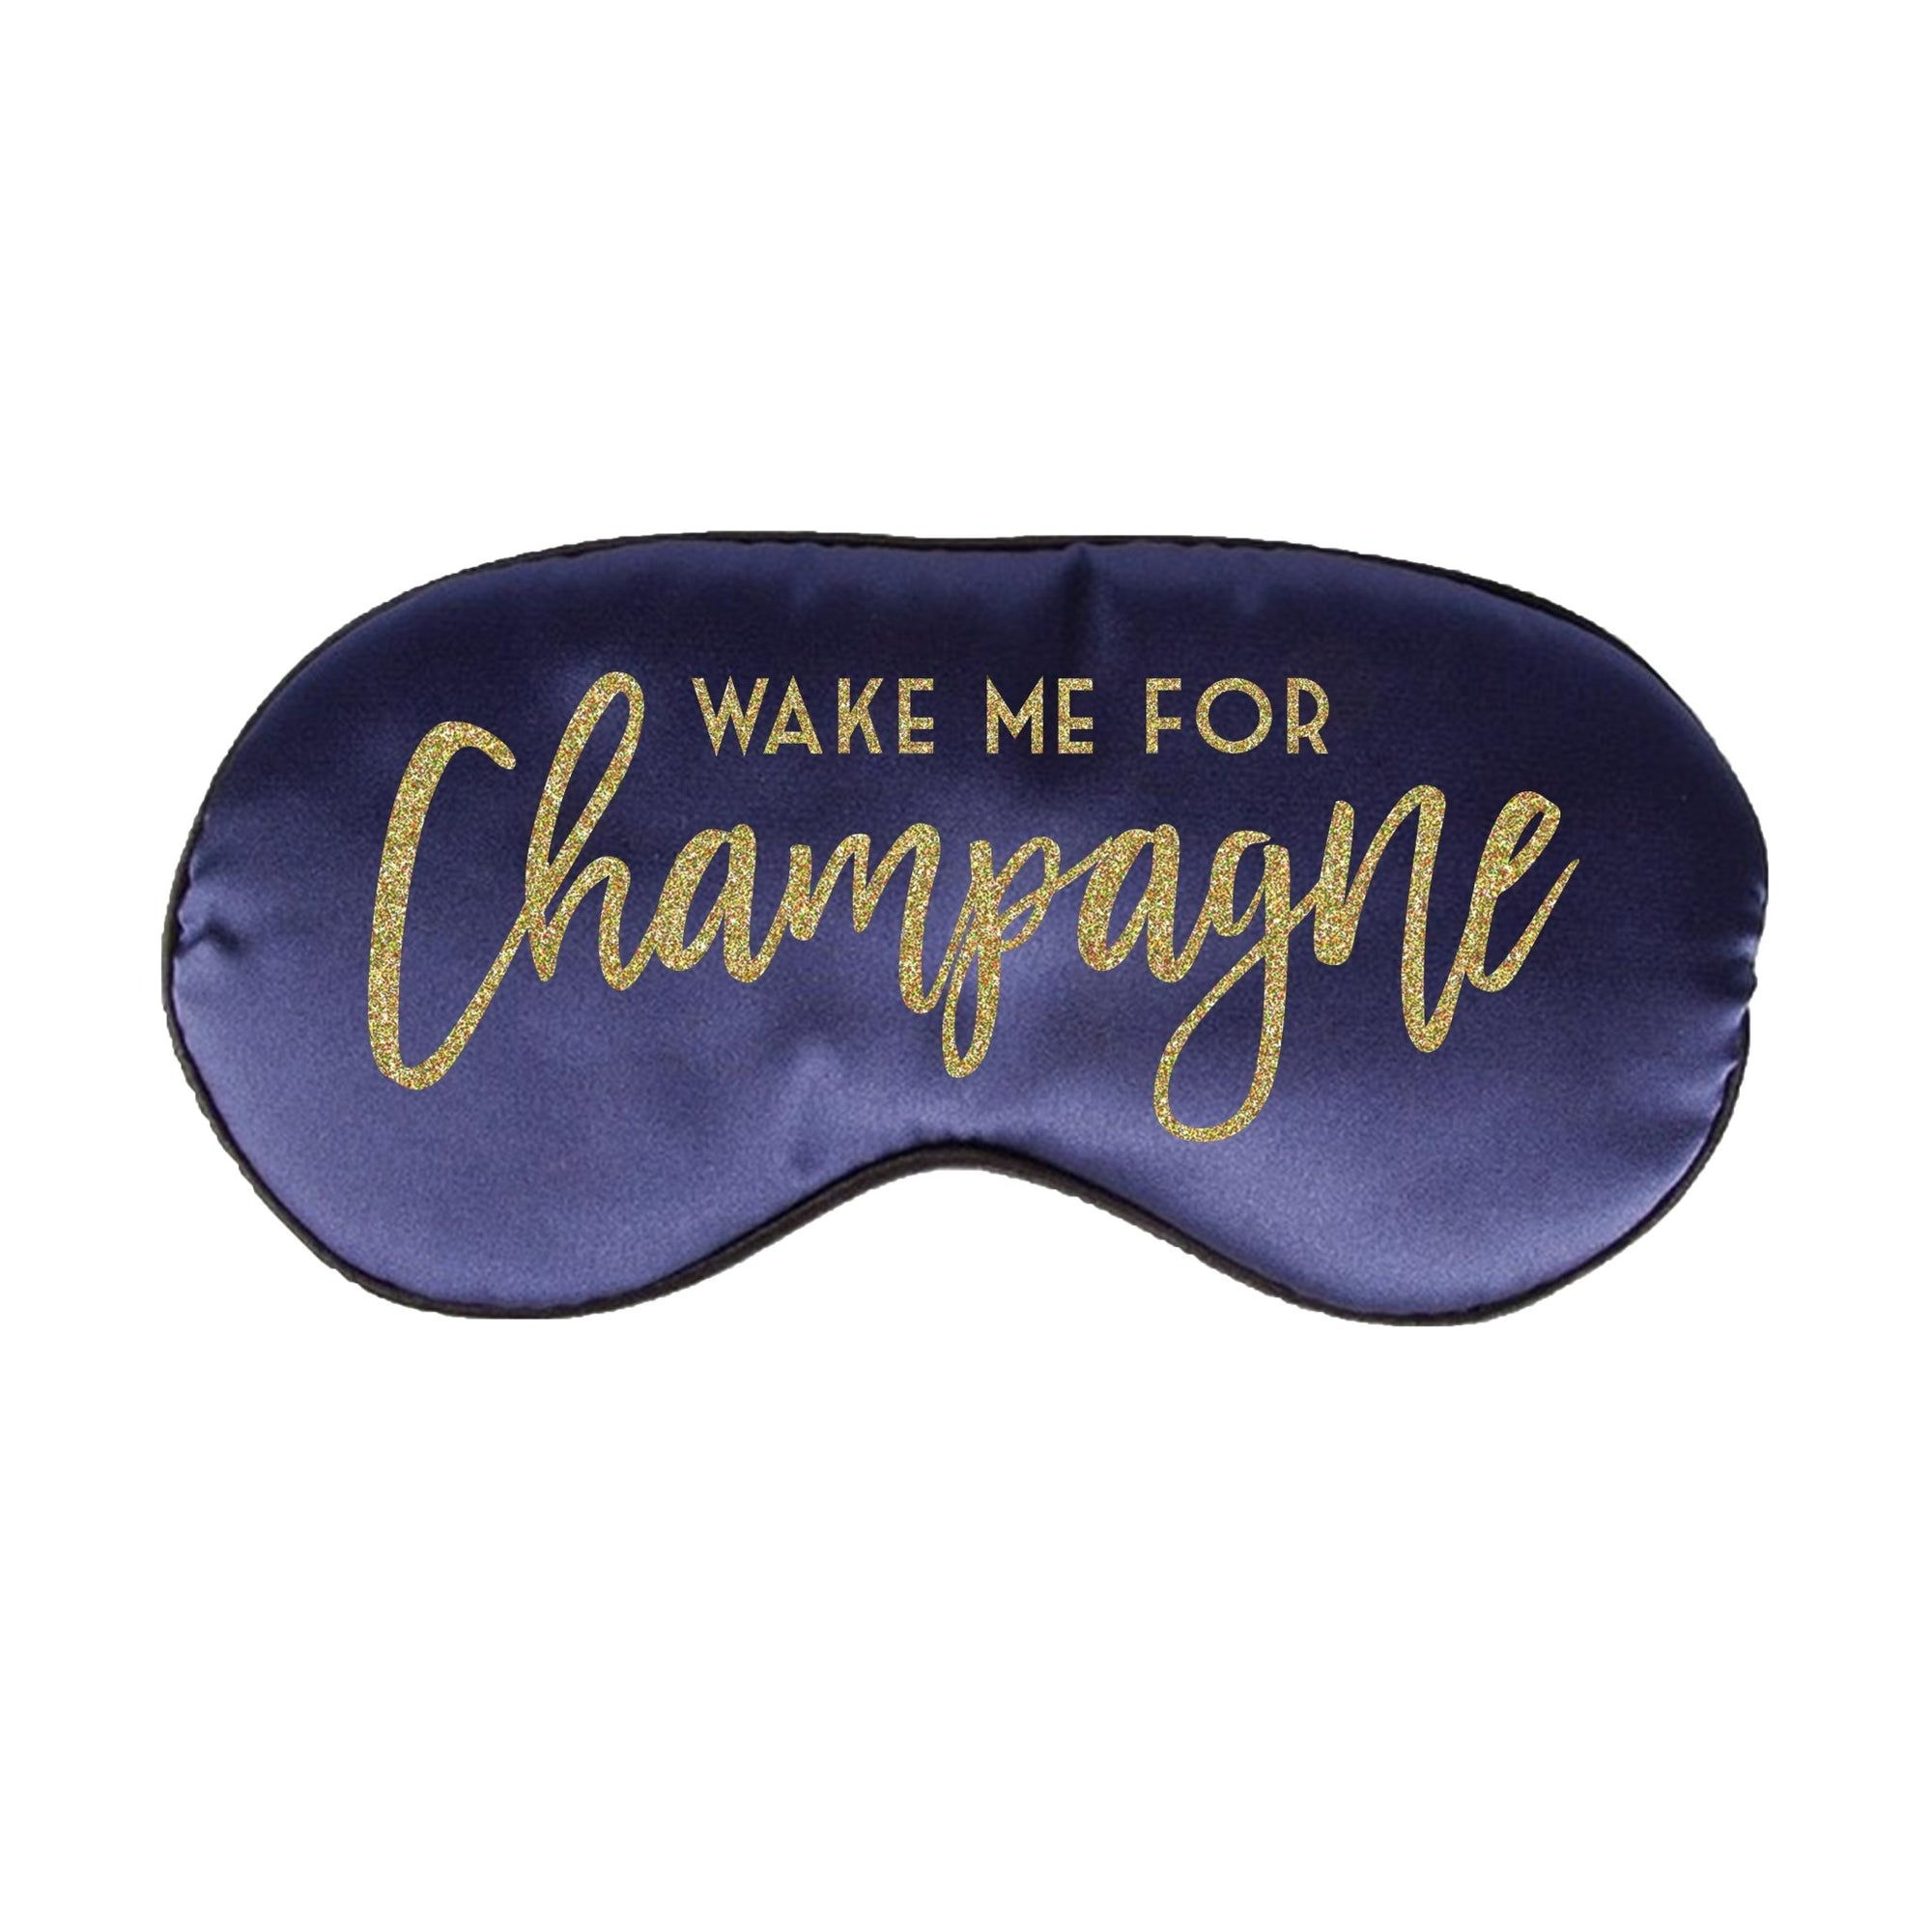 Wake Me For Champagne Sleep Mask - Sprinkled With Pink #bachelorette #custom #gifts